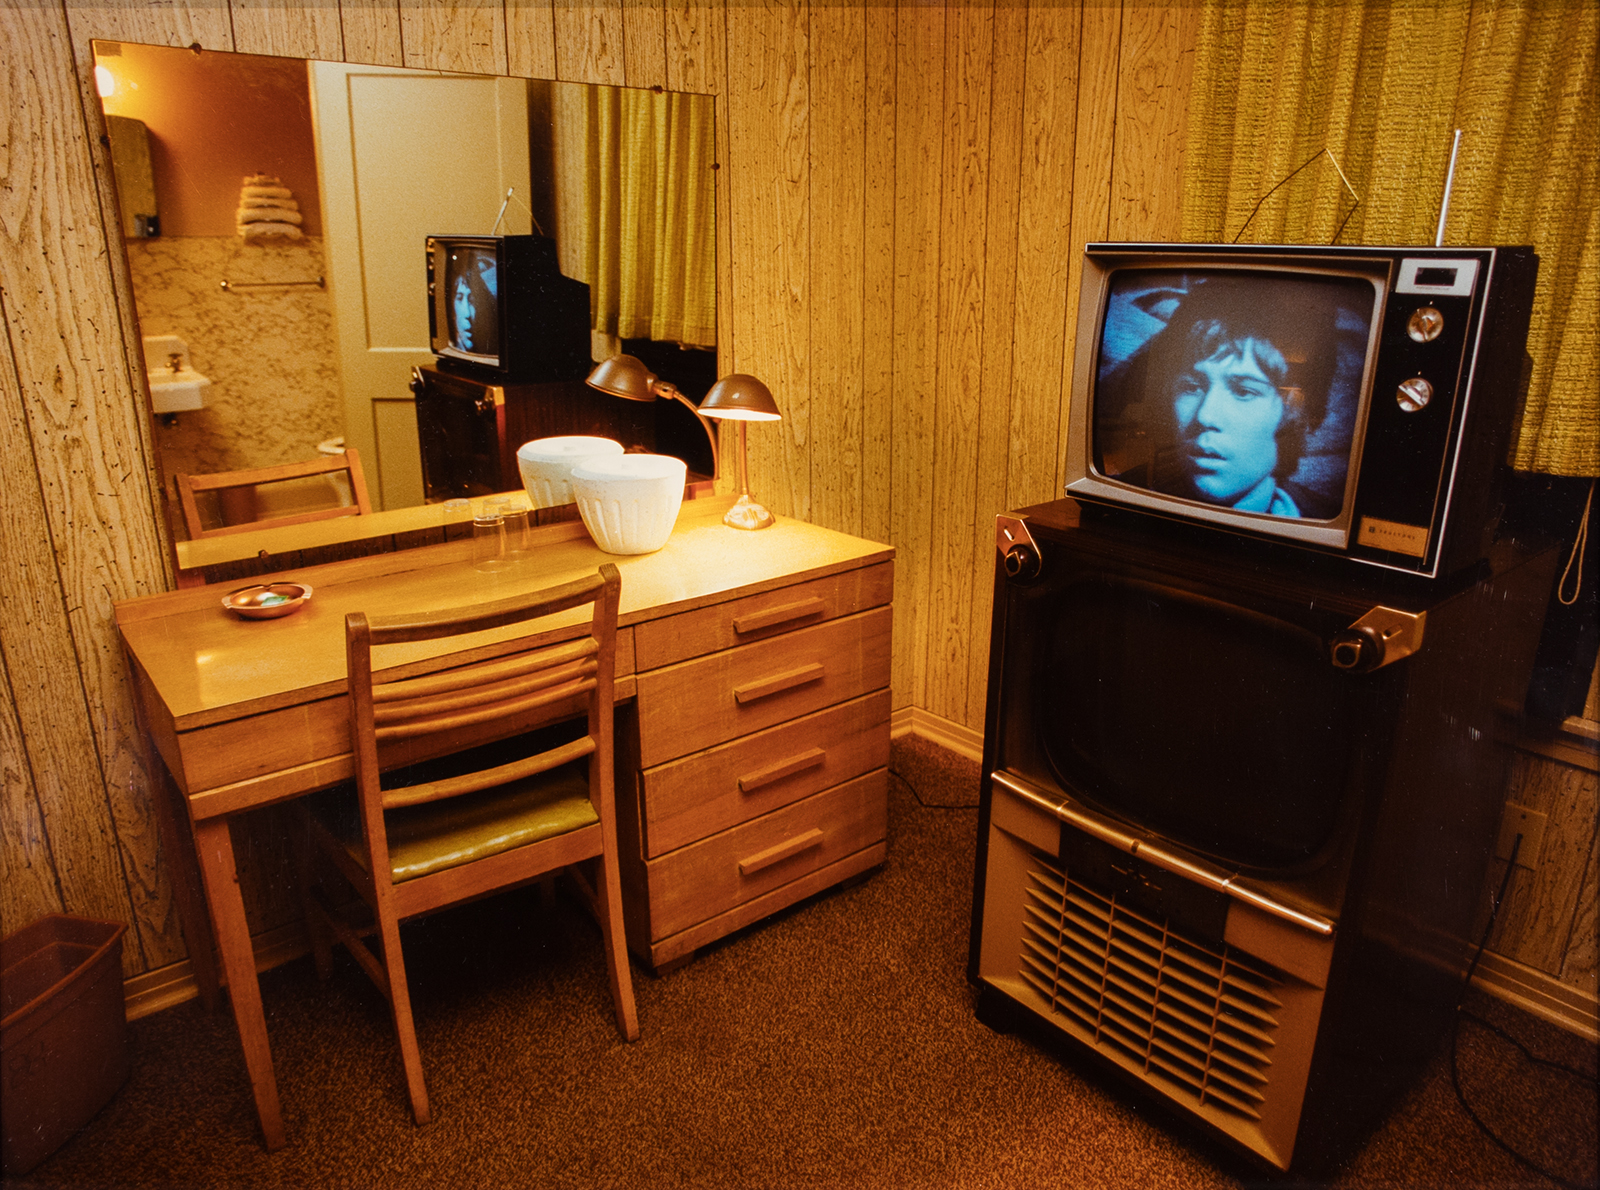 Shellburne Thurber, Motel Room with Two TVs, 1988